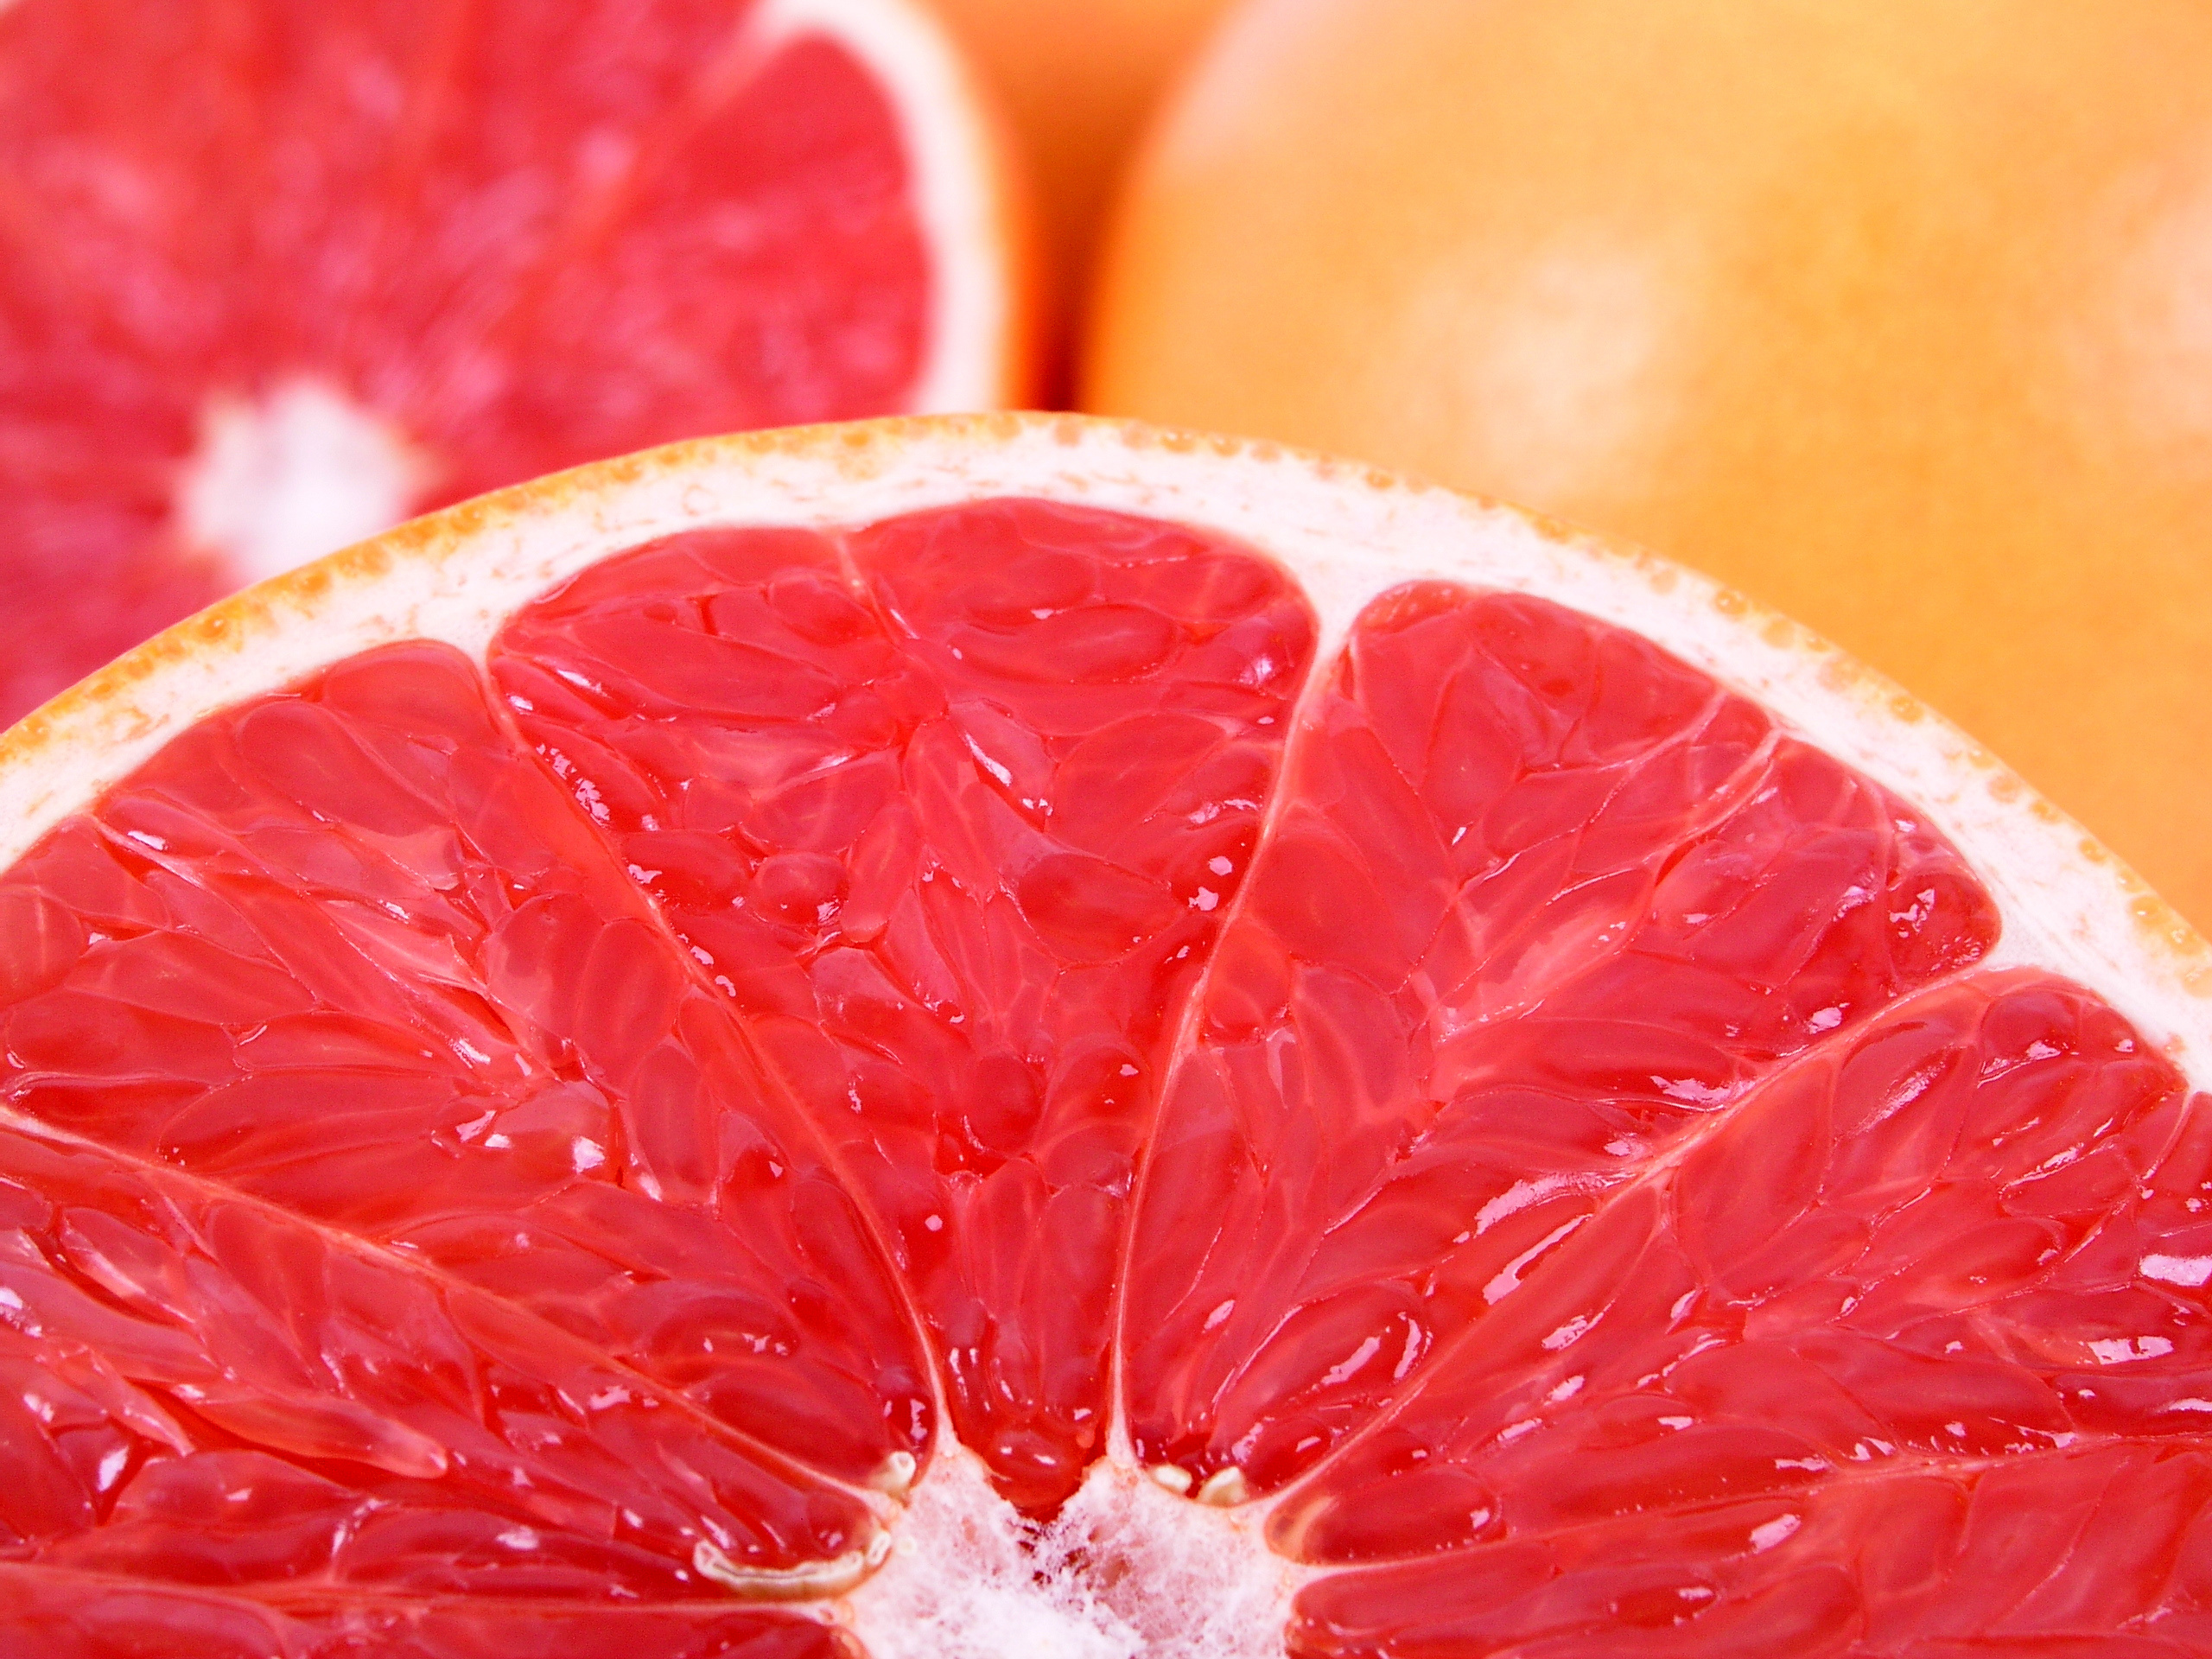 Amazing Grapefruit Wallpaper